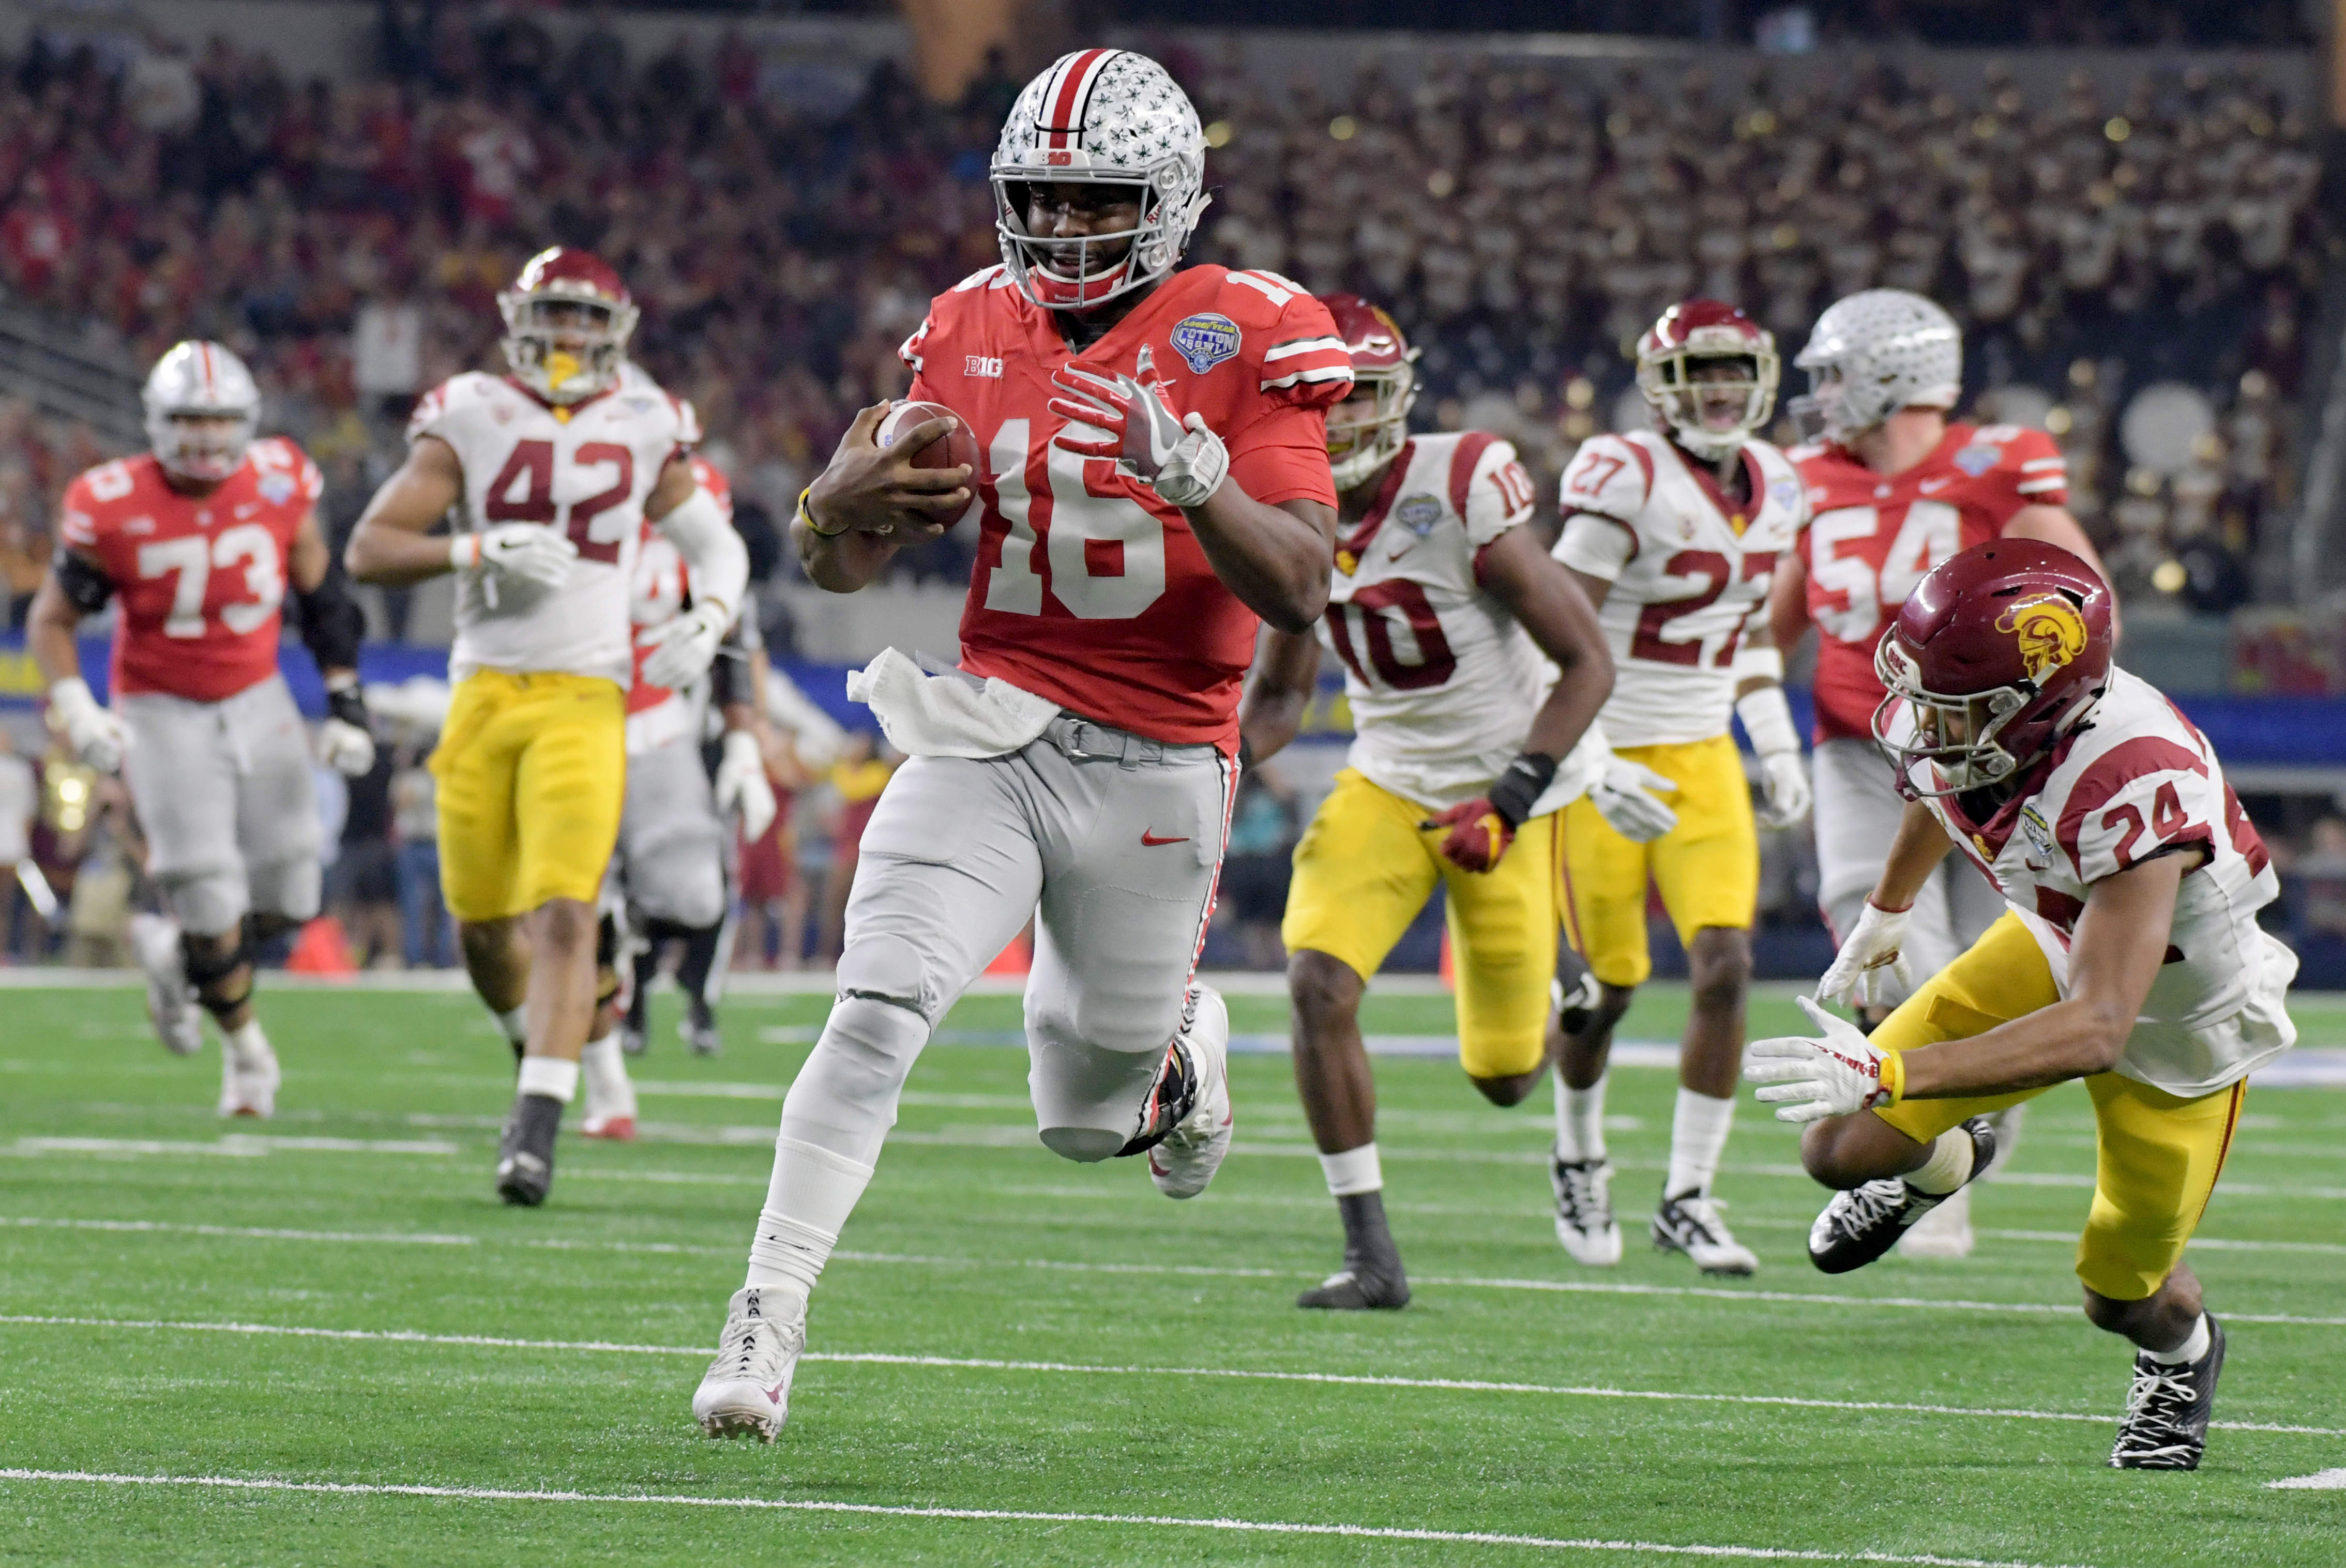 Dec 29, 2017; Arlington, TX, USA; Ohio State Buckeyes quarterback J.T. Barrett (16) runs in a touchdown past Southern California Trojans cornerback Isaiah Langley (24) in the 2017 Cotton Bowl at AT&T Stadium. Mandatory Credit: Kirby Lee-USA TODAY Sports